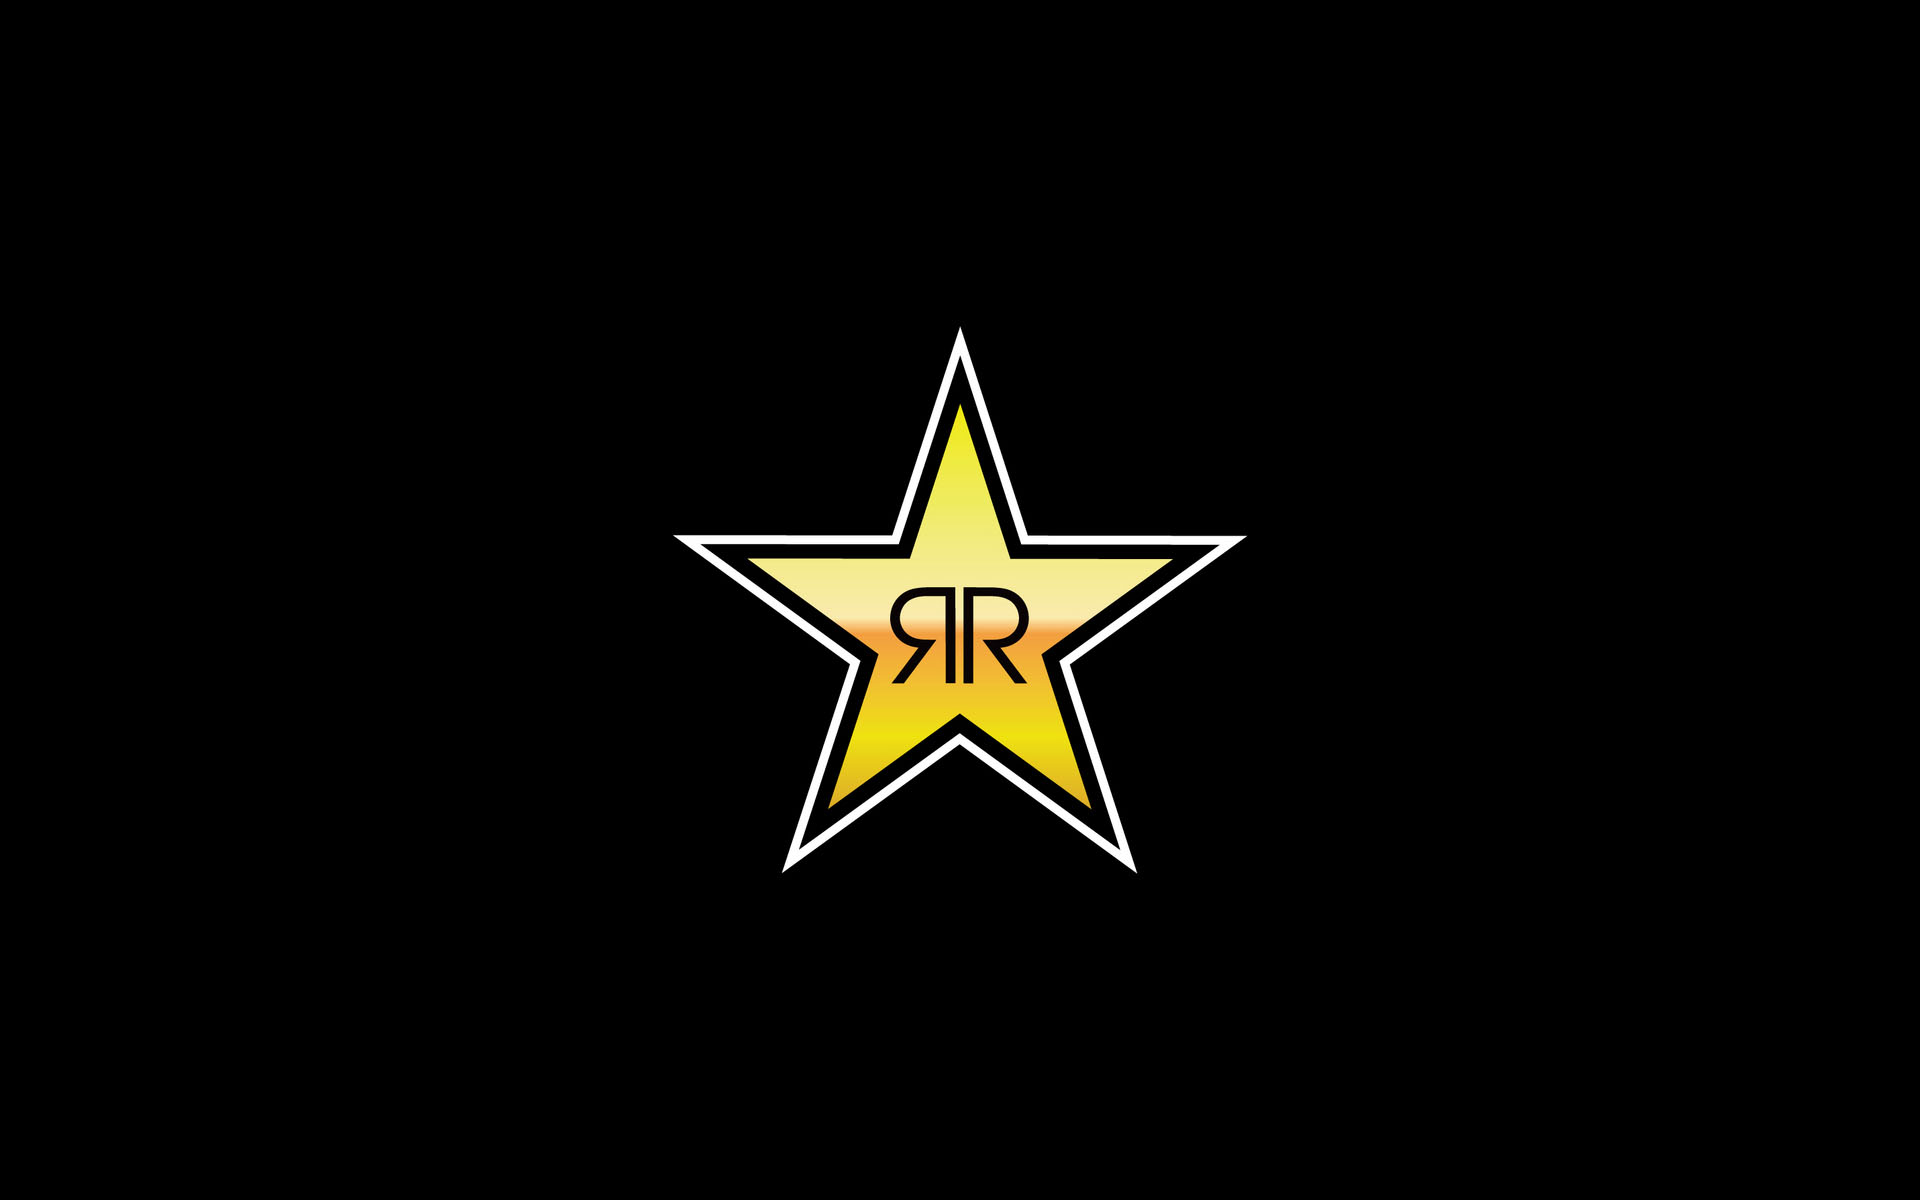 Download rockstar wallpaper black